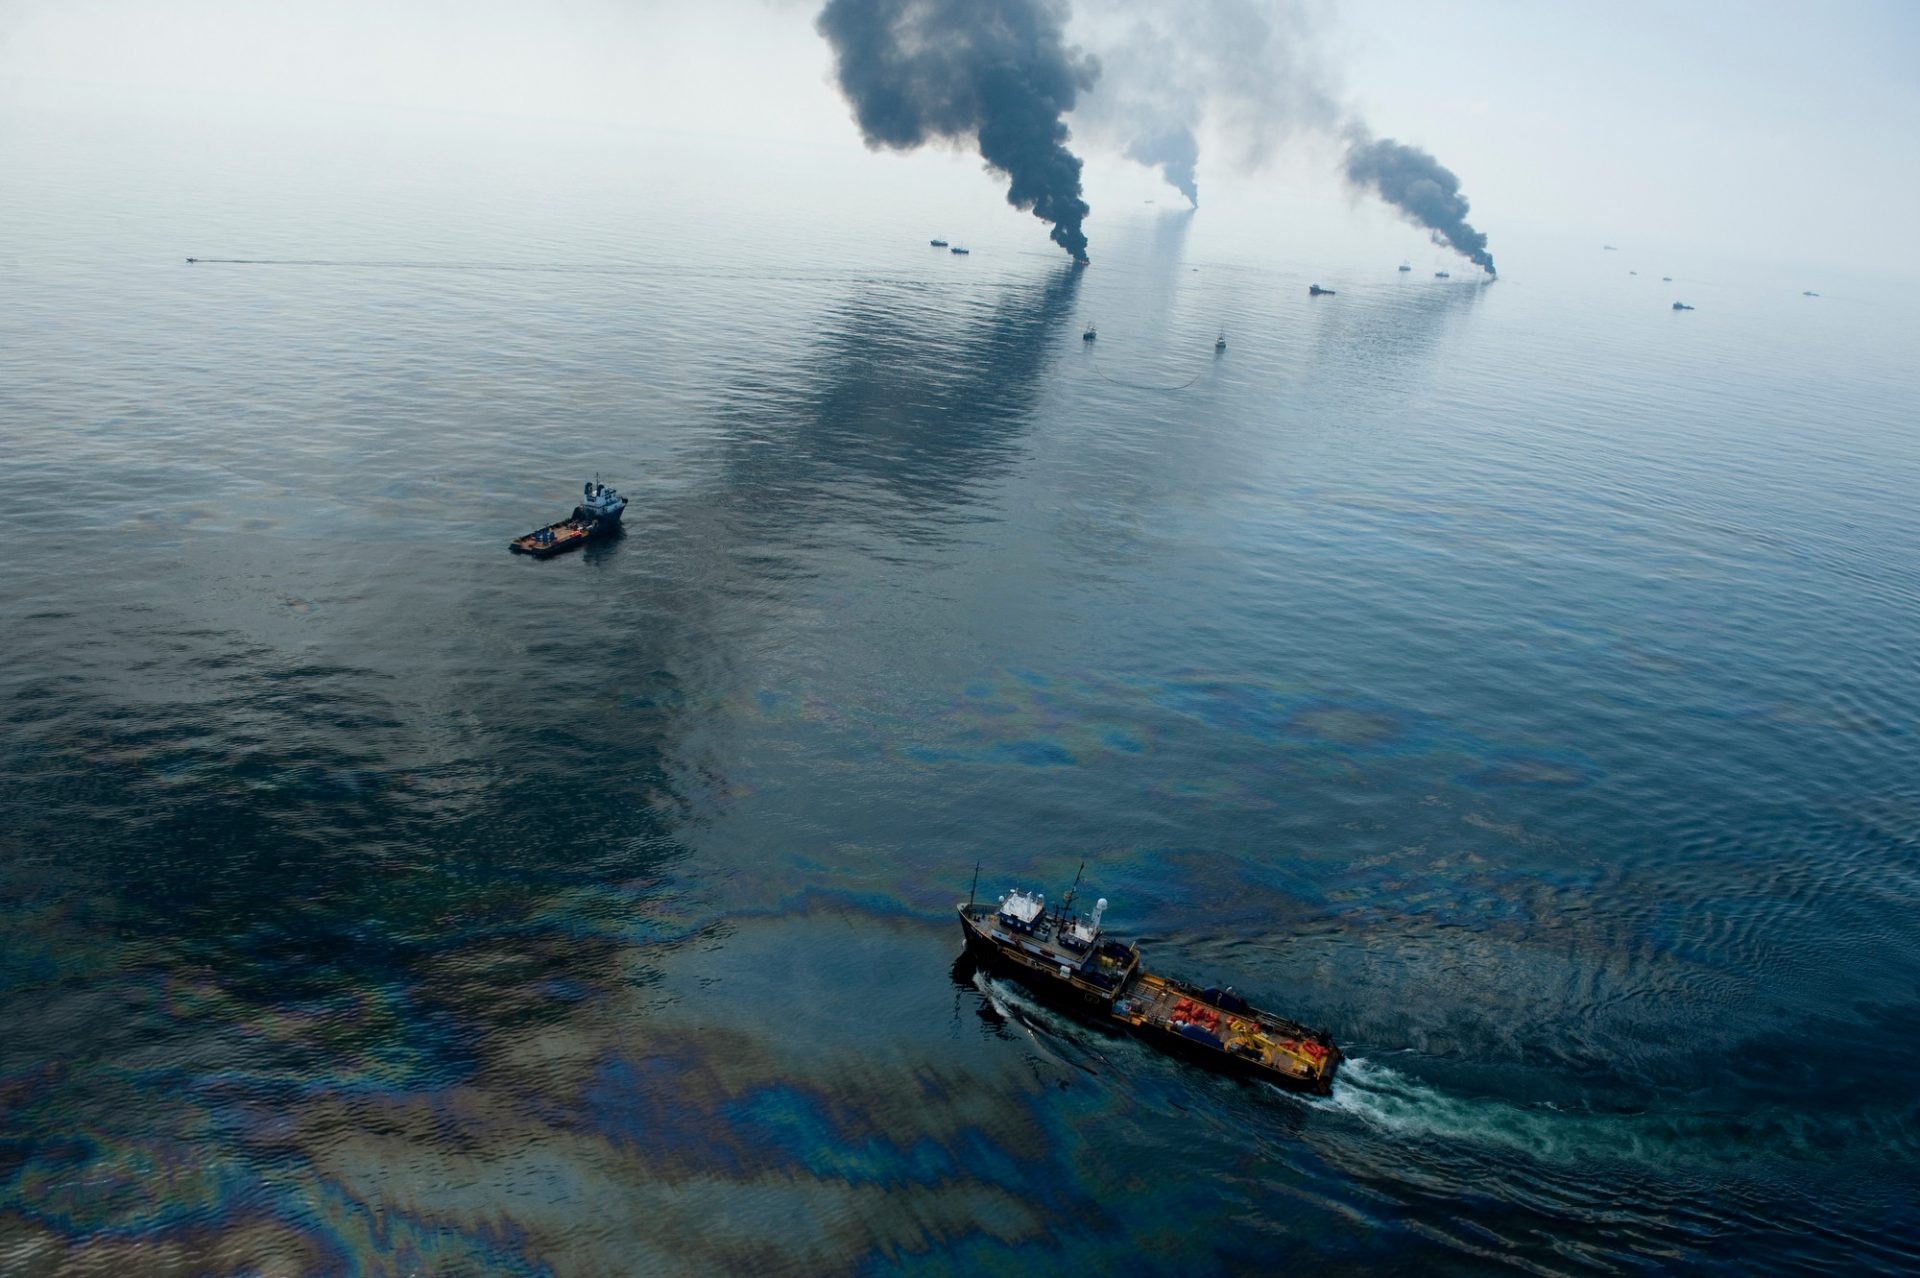 Photo: Boats burning off surface oil not near the Deepwater Horizon spill site creating huge black columns of smoke in the Gulf of Mexico.